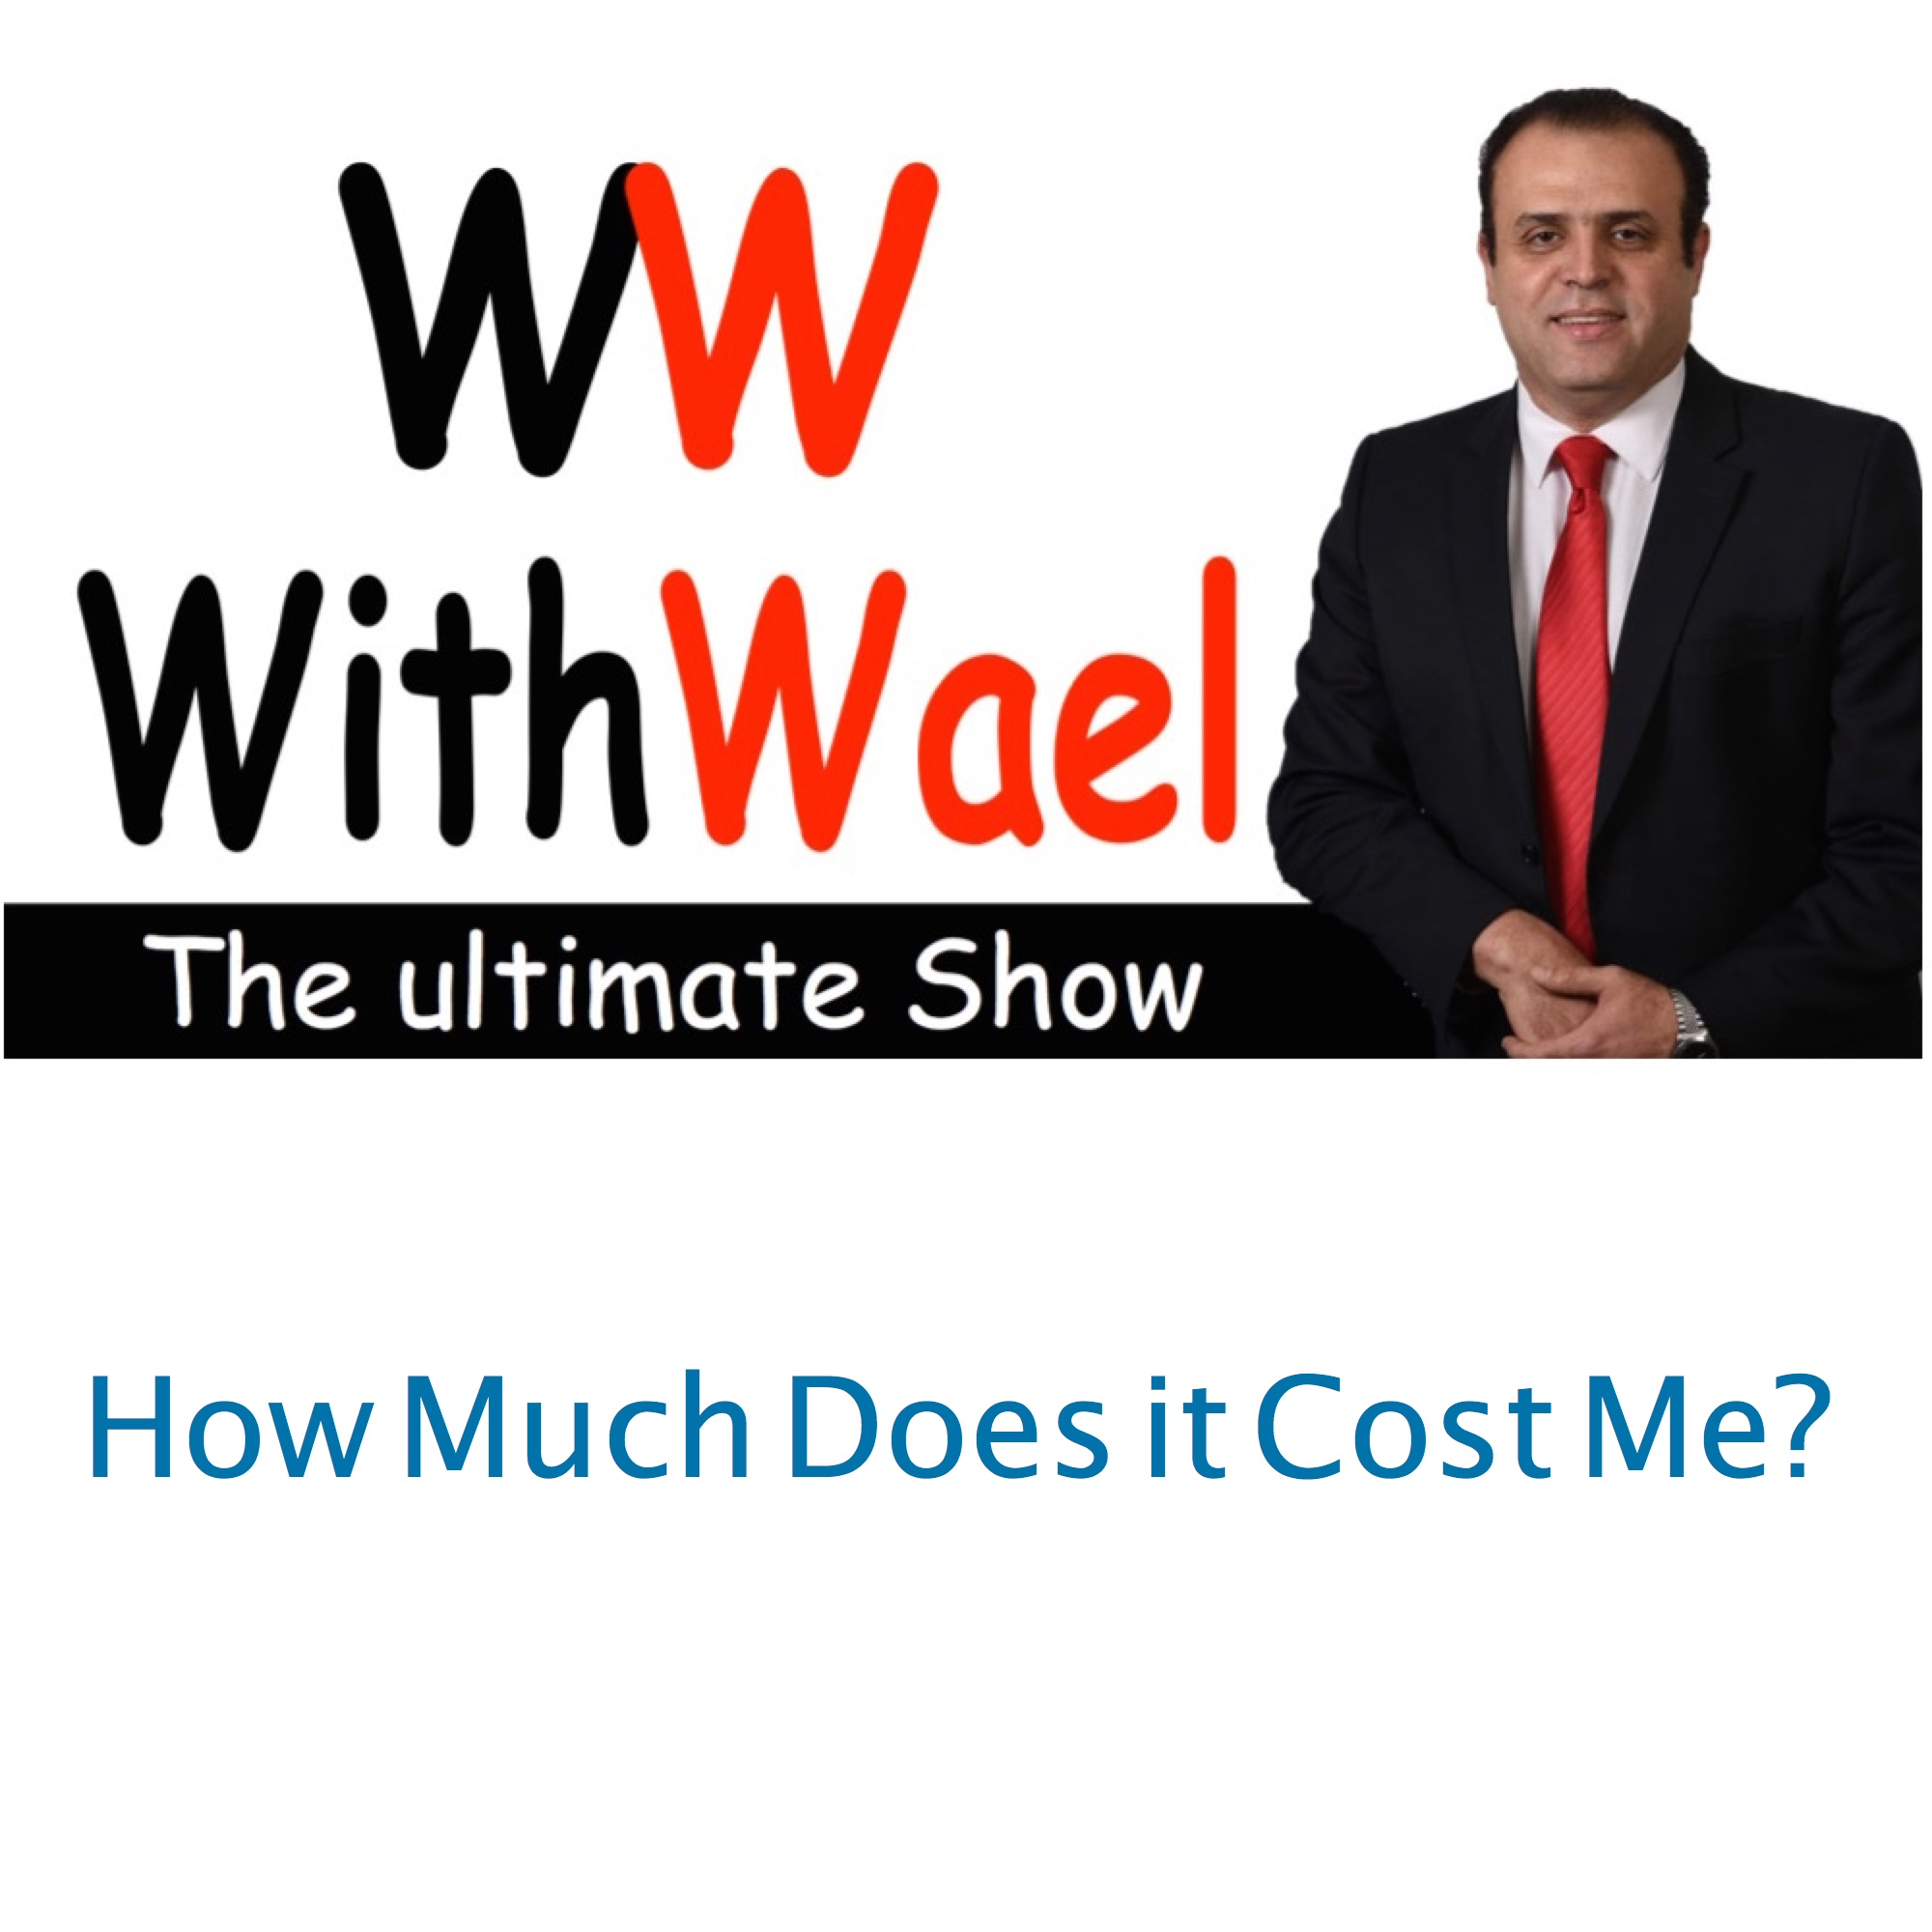 withwaellogo1000x1000-how-much-does-it-costme